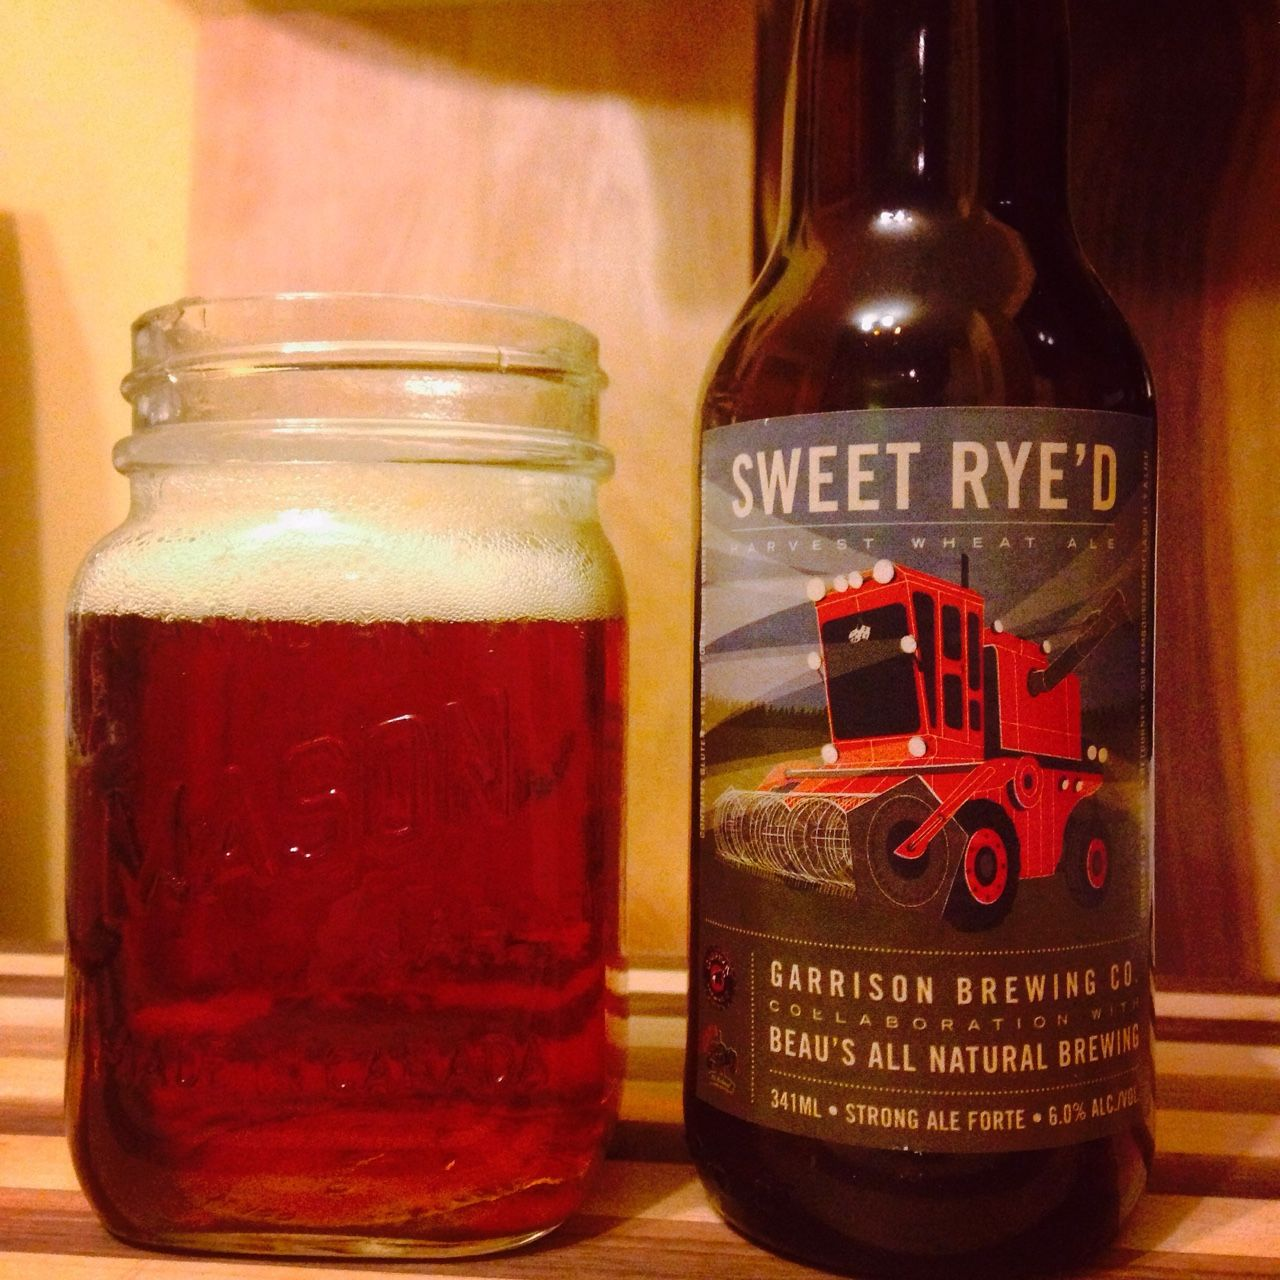 4 Sweet Rye D Harvest Wheat Ale Well Balanced Red And A Bit Wheaty Sweet Slightly Malty But Decent Bitter Crisp Finish This Collaboration Between Ga Beer